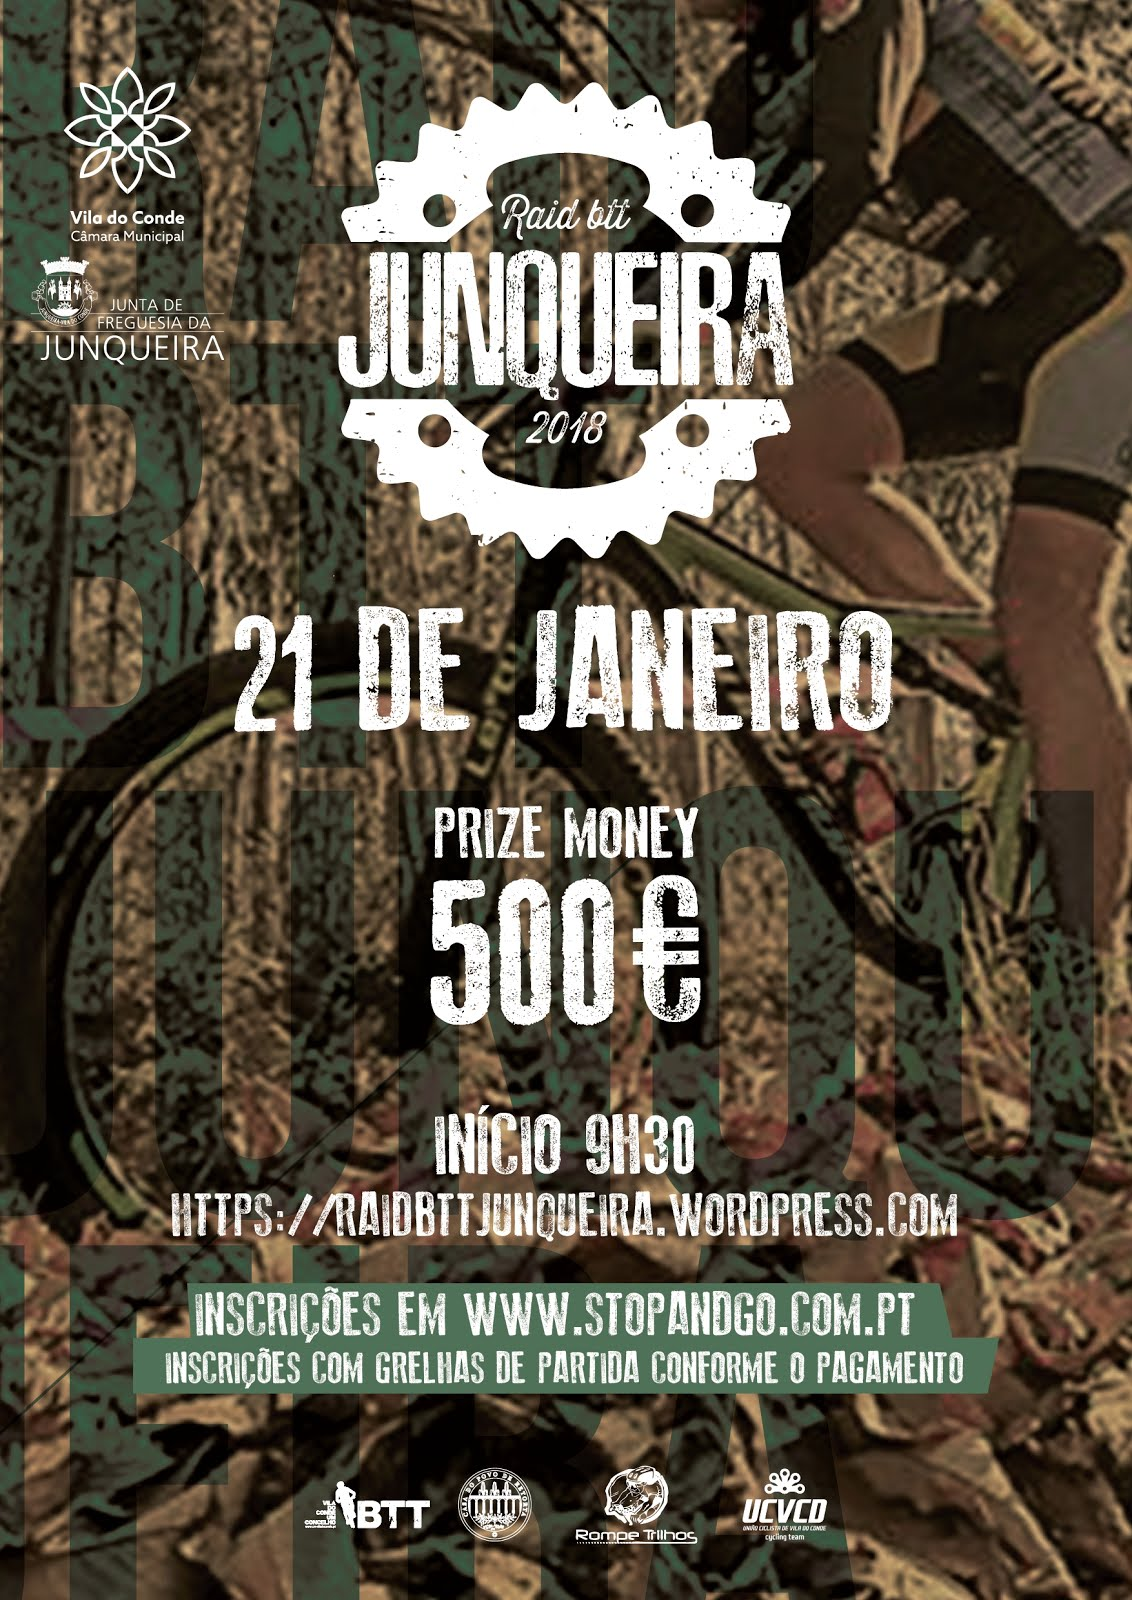 21JAN * JUNQUEIRA